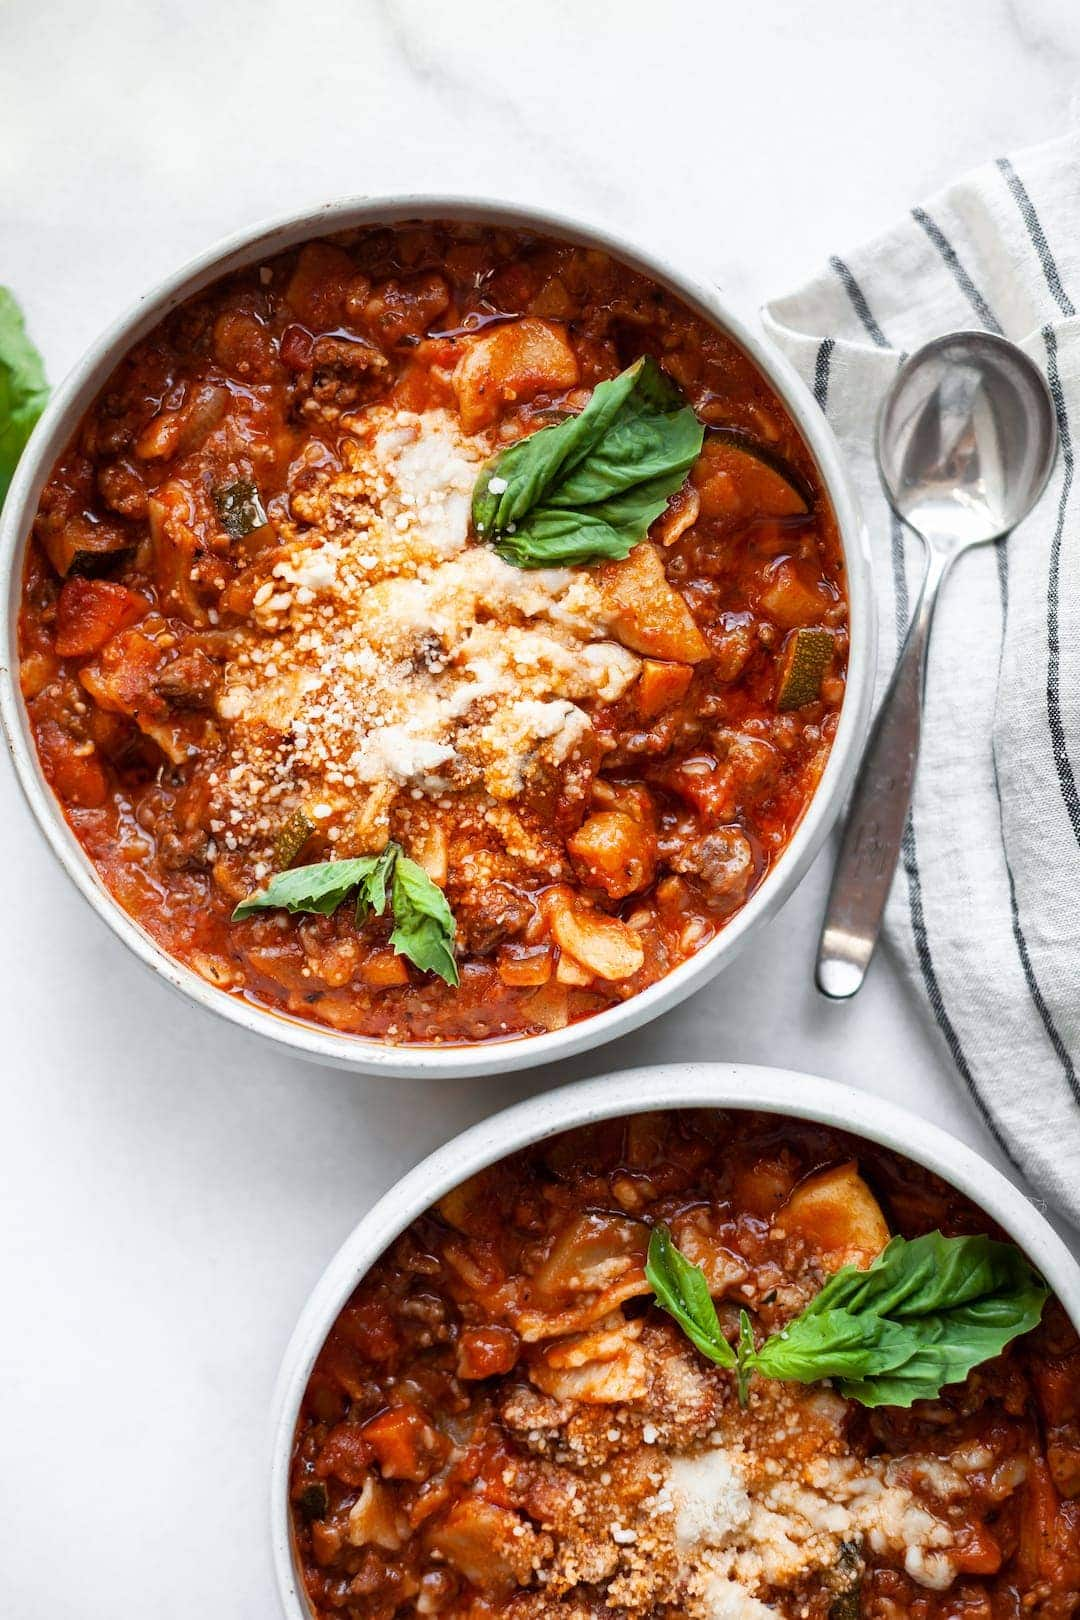 Slow Cooker Lasagna Soup in two bowls garnished with basil